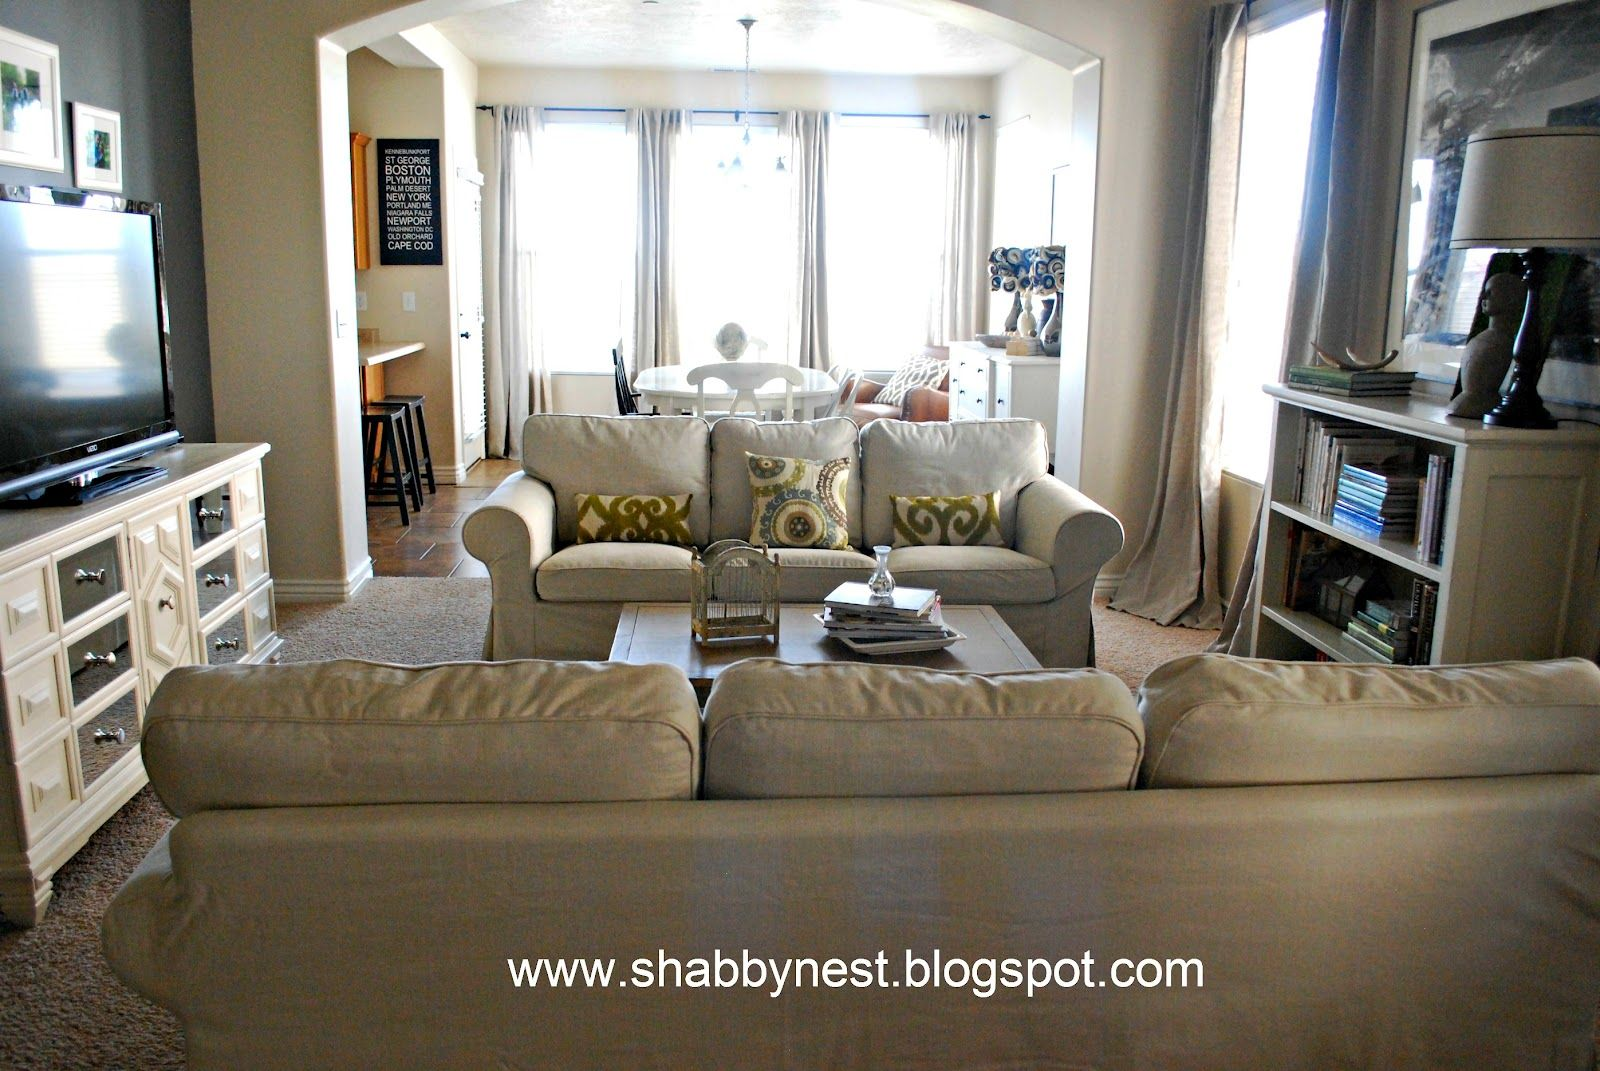 Two Loveseats In Living Room Two Sofas Facing Each Otherthen Chairs On The Tv Side For The